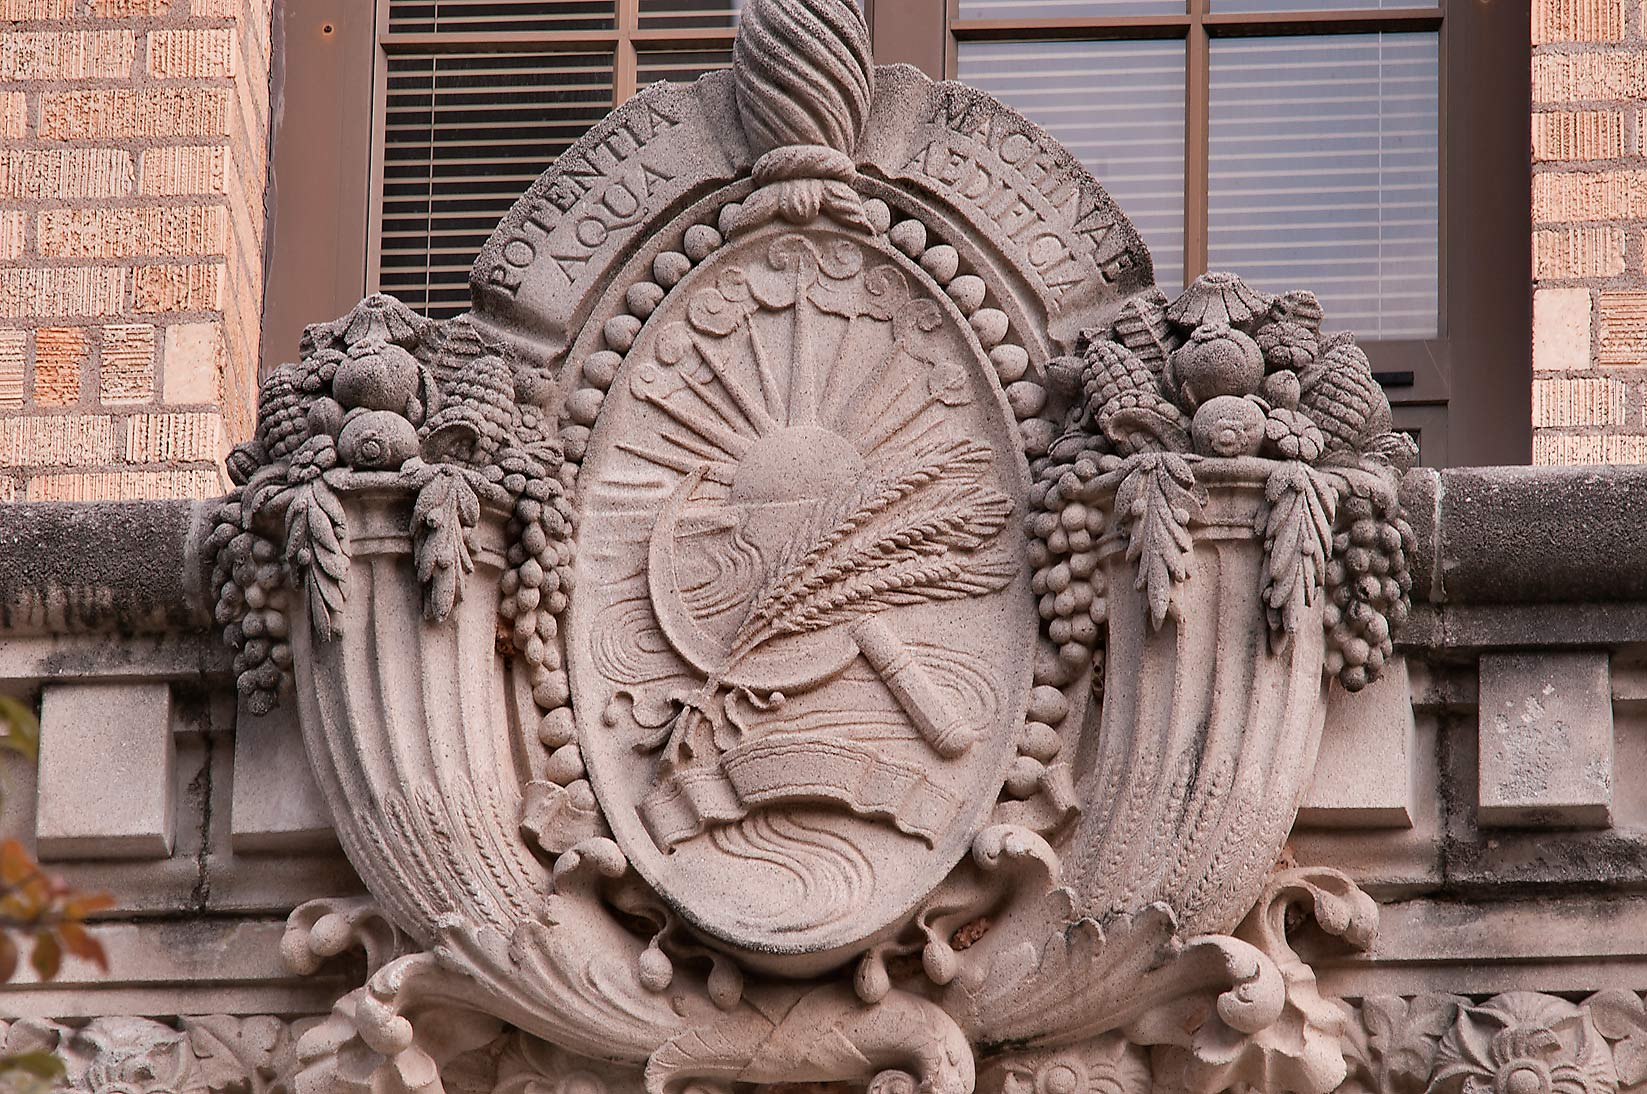 Decoration over the entrance of Agricultural...M University. College Station, Texas